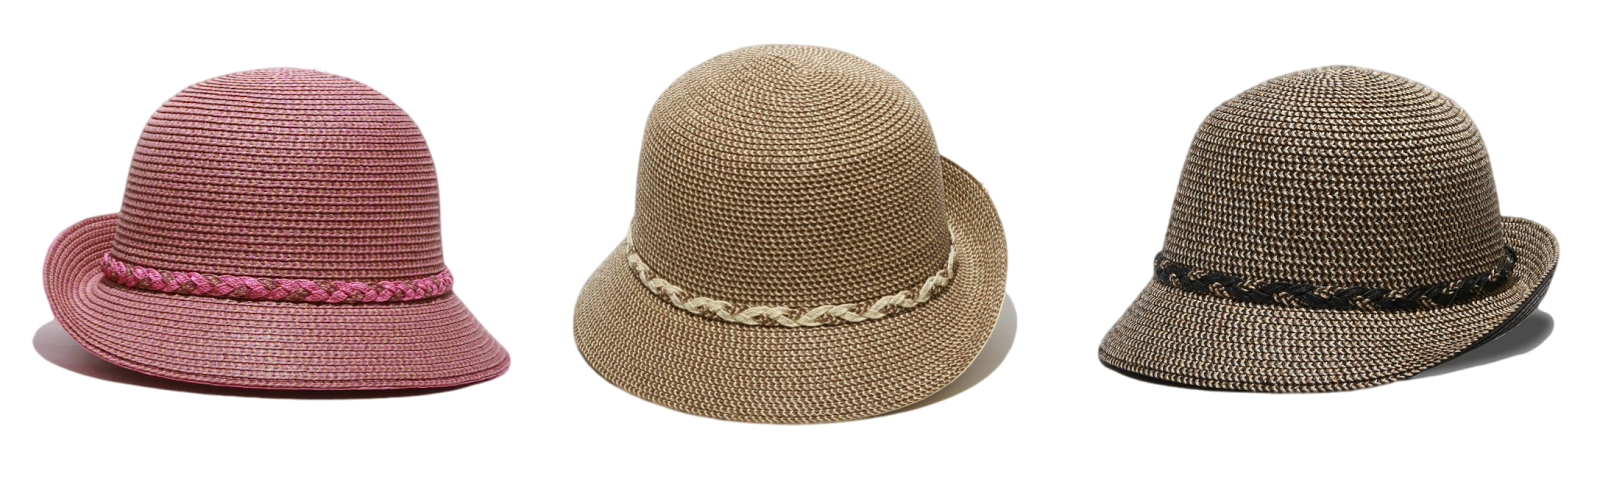 http://www.solescapes.com/Brixby-Straw-Sun-Hats-s/2170.htm